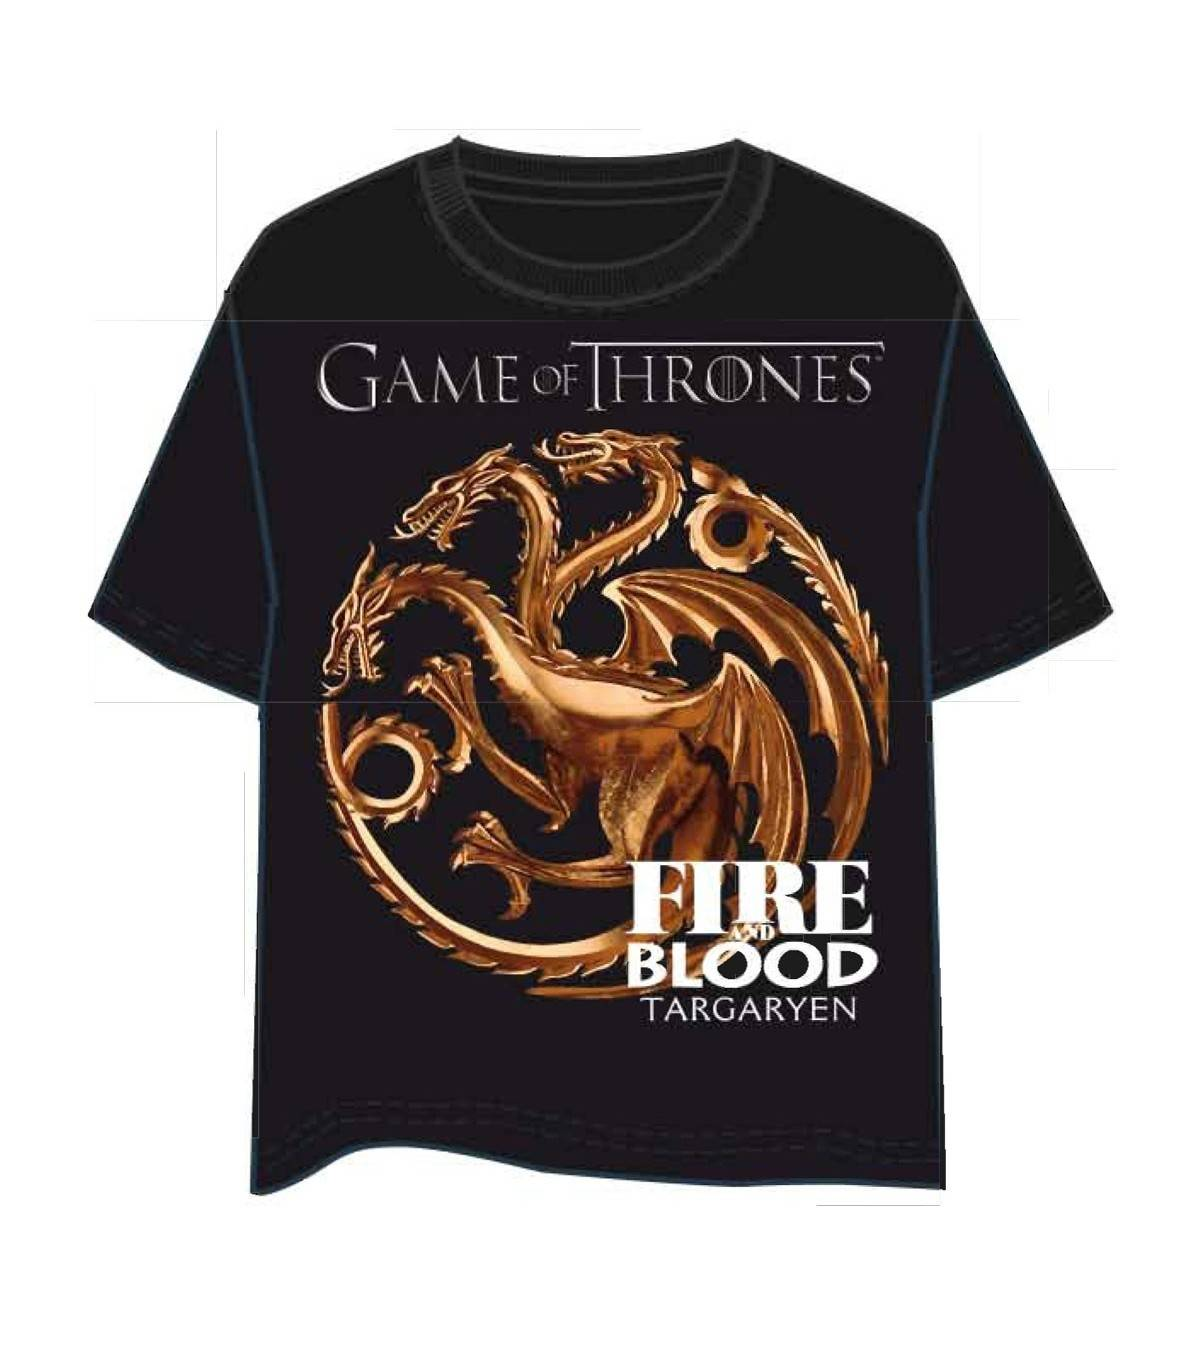 GAMES OF THRONES Camiseta JUEGO DE TRONOS 3563 M Negro